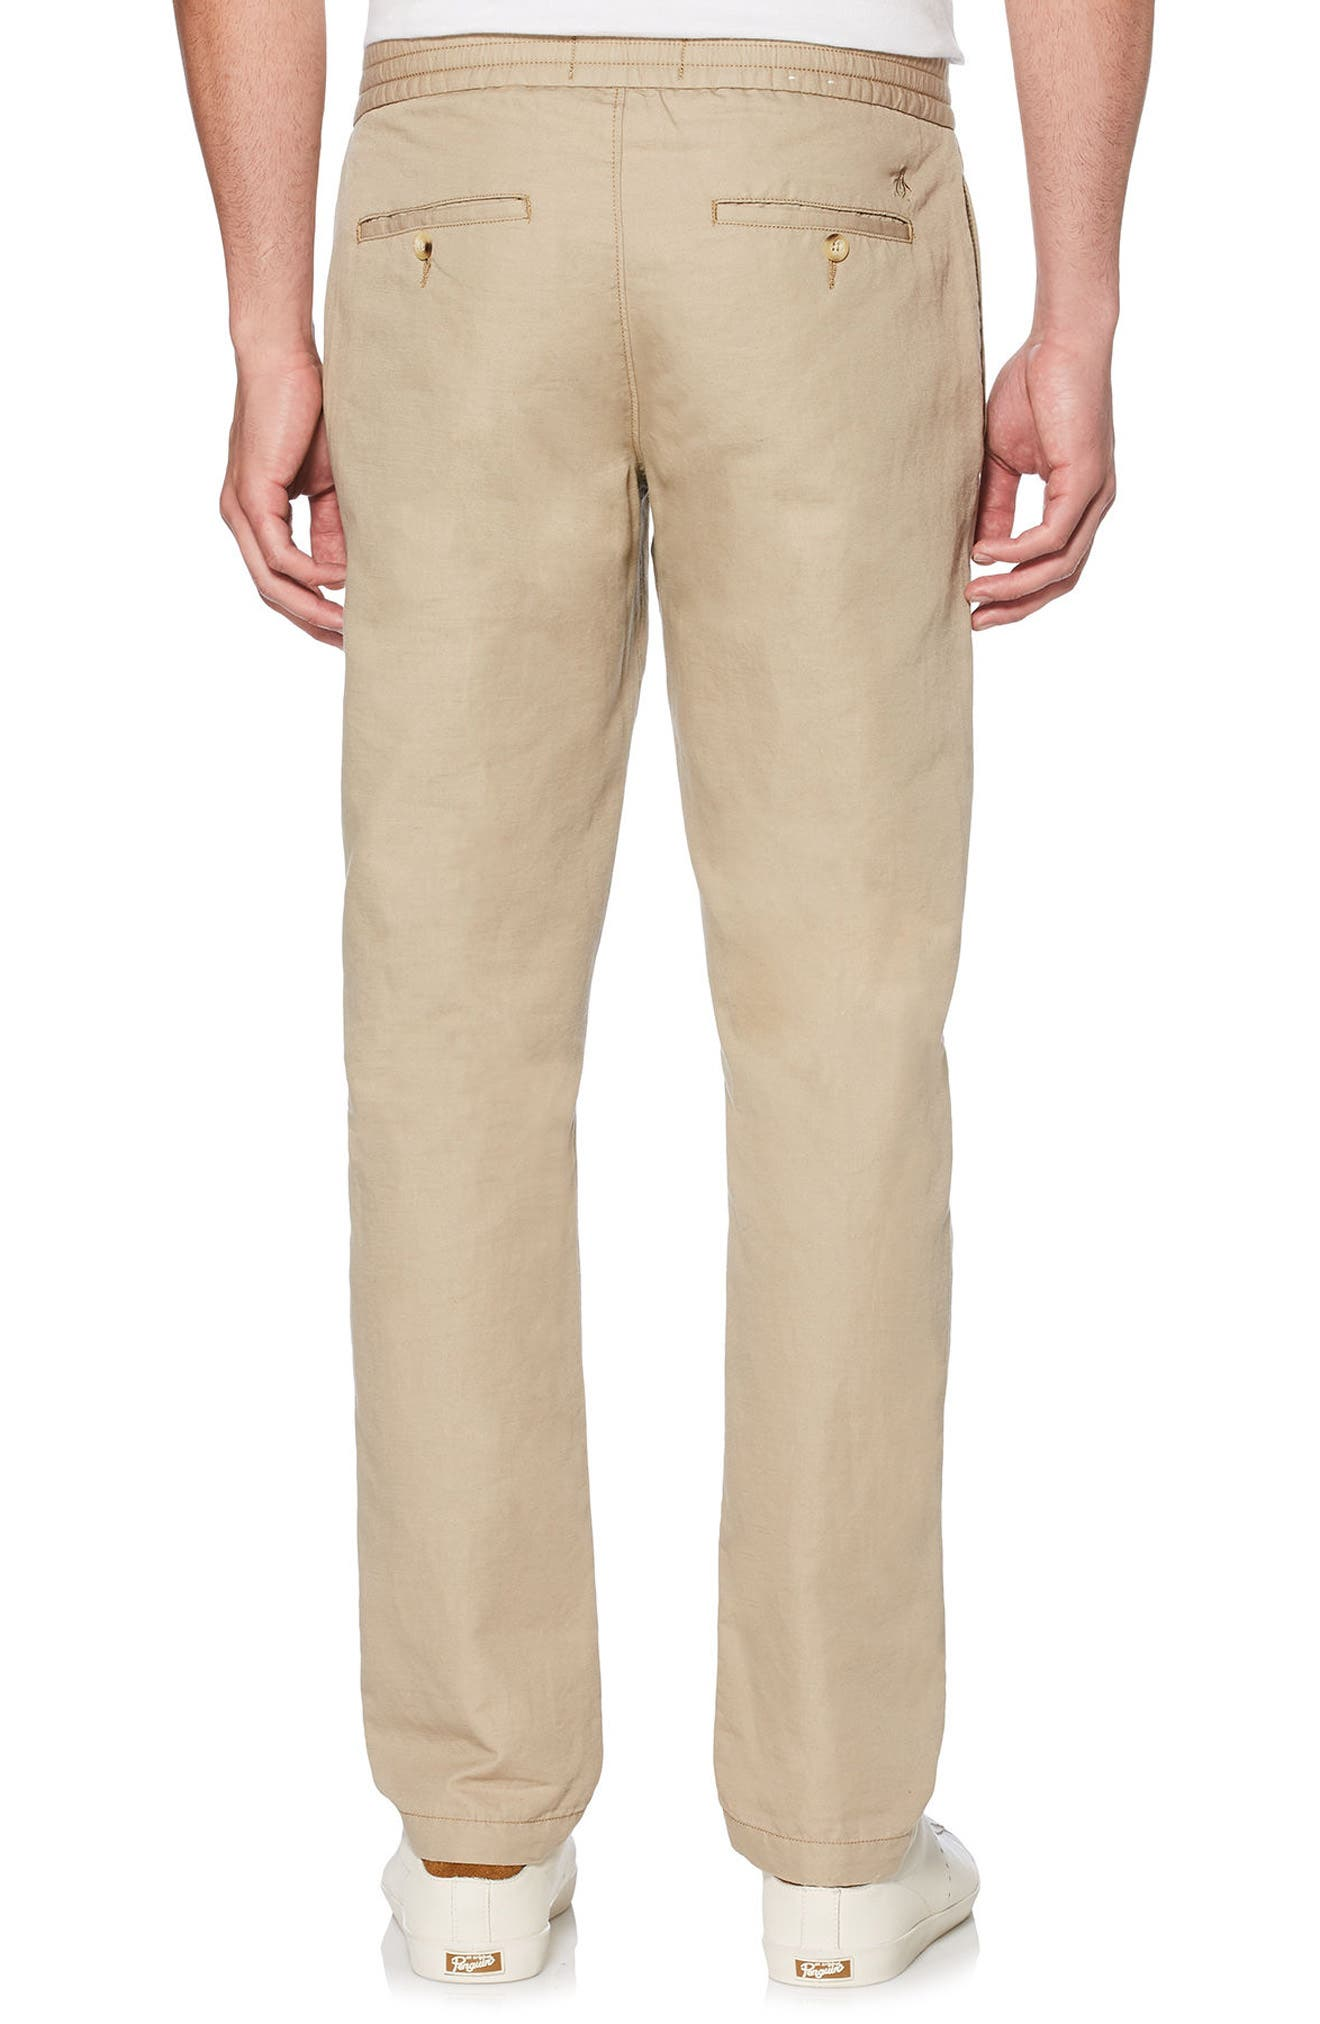 Linen Blend Pants,                             Alternate thumbnail 3, color,